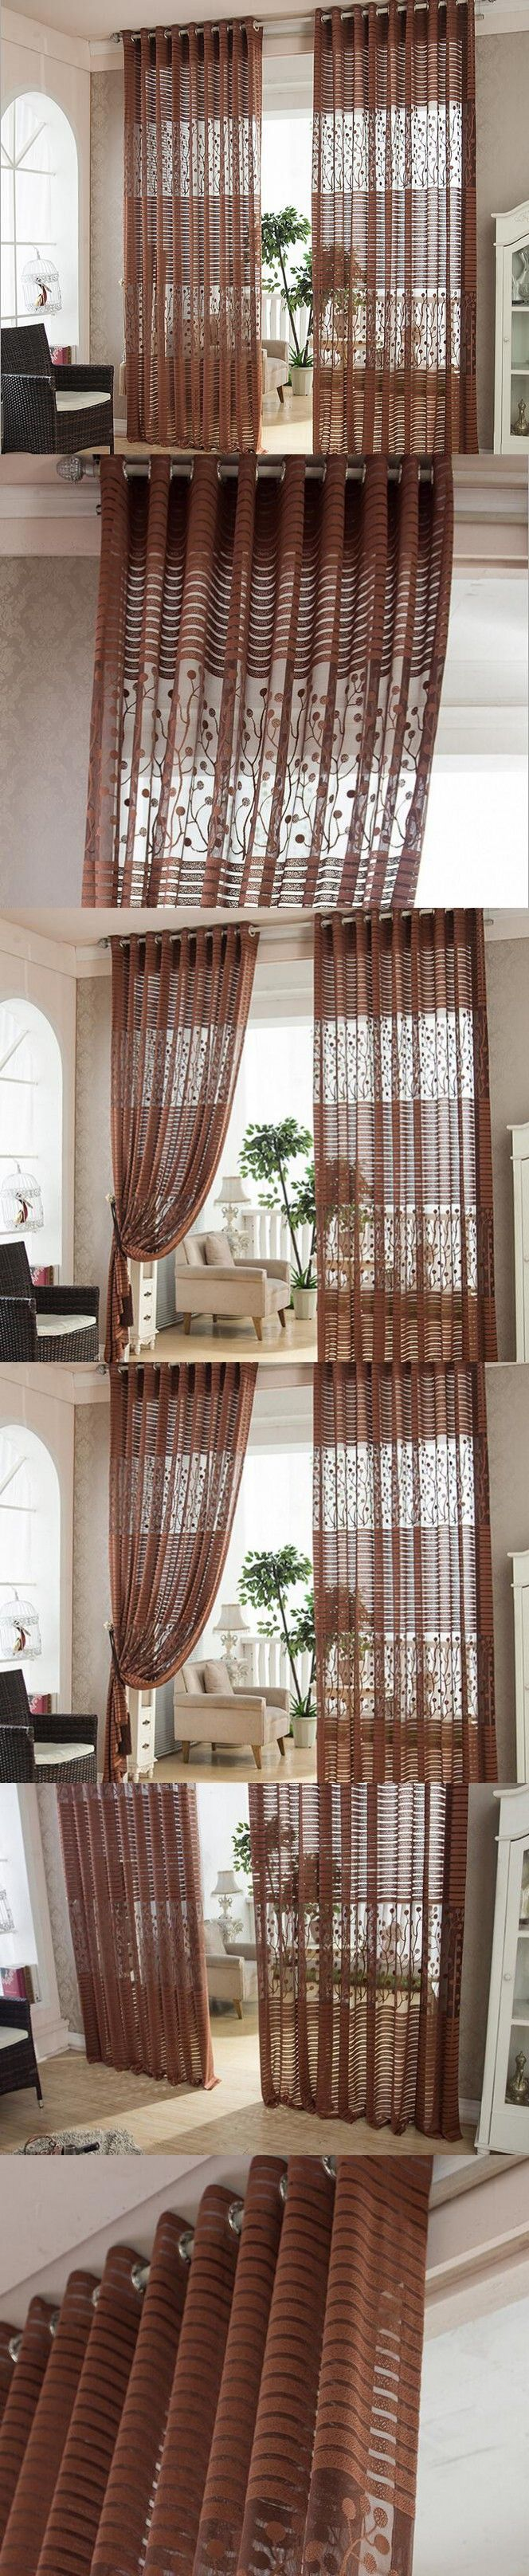 Luxury Window Curtains Modern Living Room Curtain Embroidered Voile Roller Blinds Dark Brown